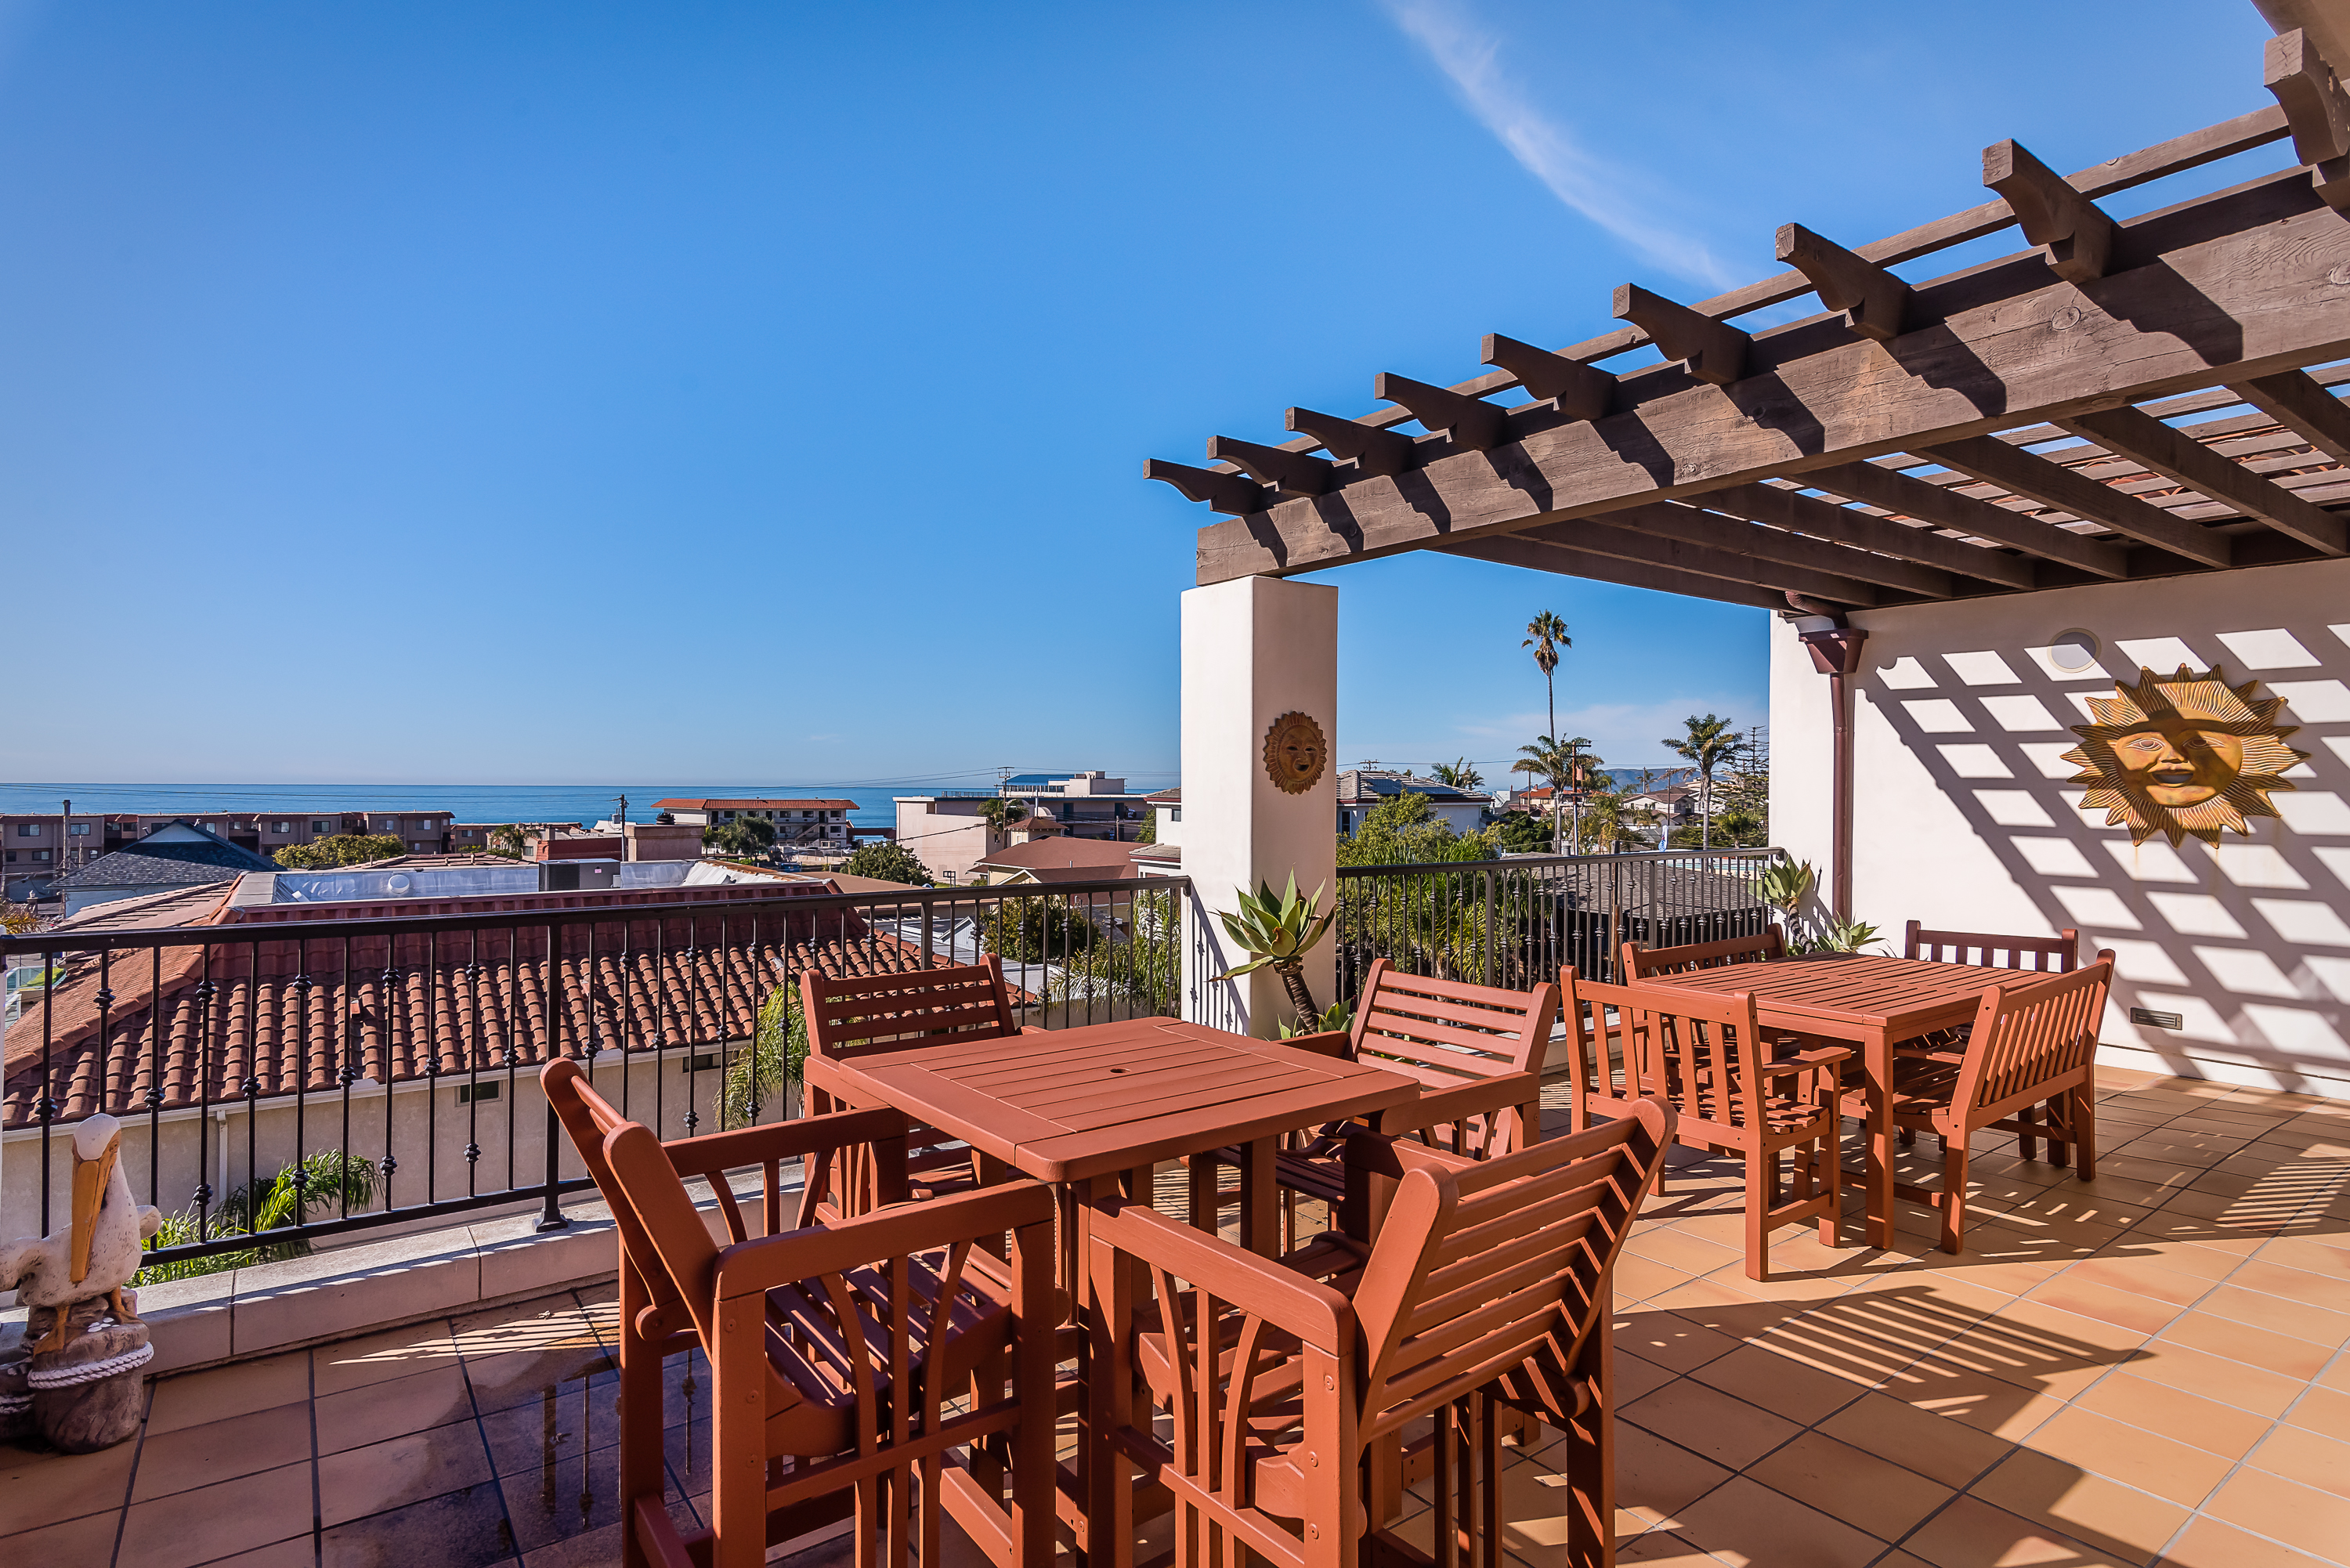 Pismo Beach CA Vacation Rental Welcome to Pismo